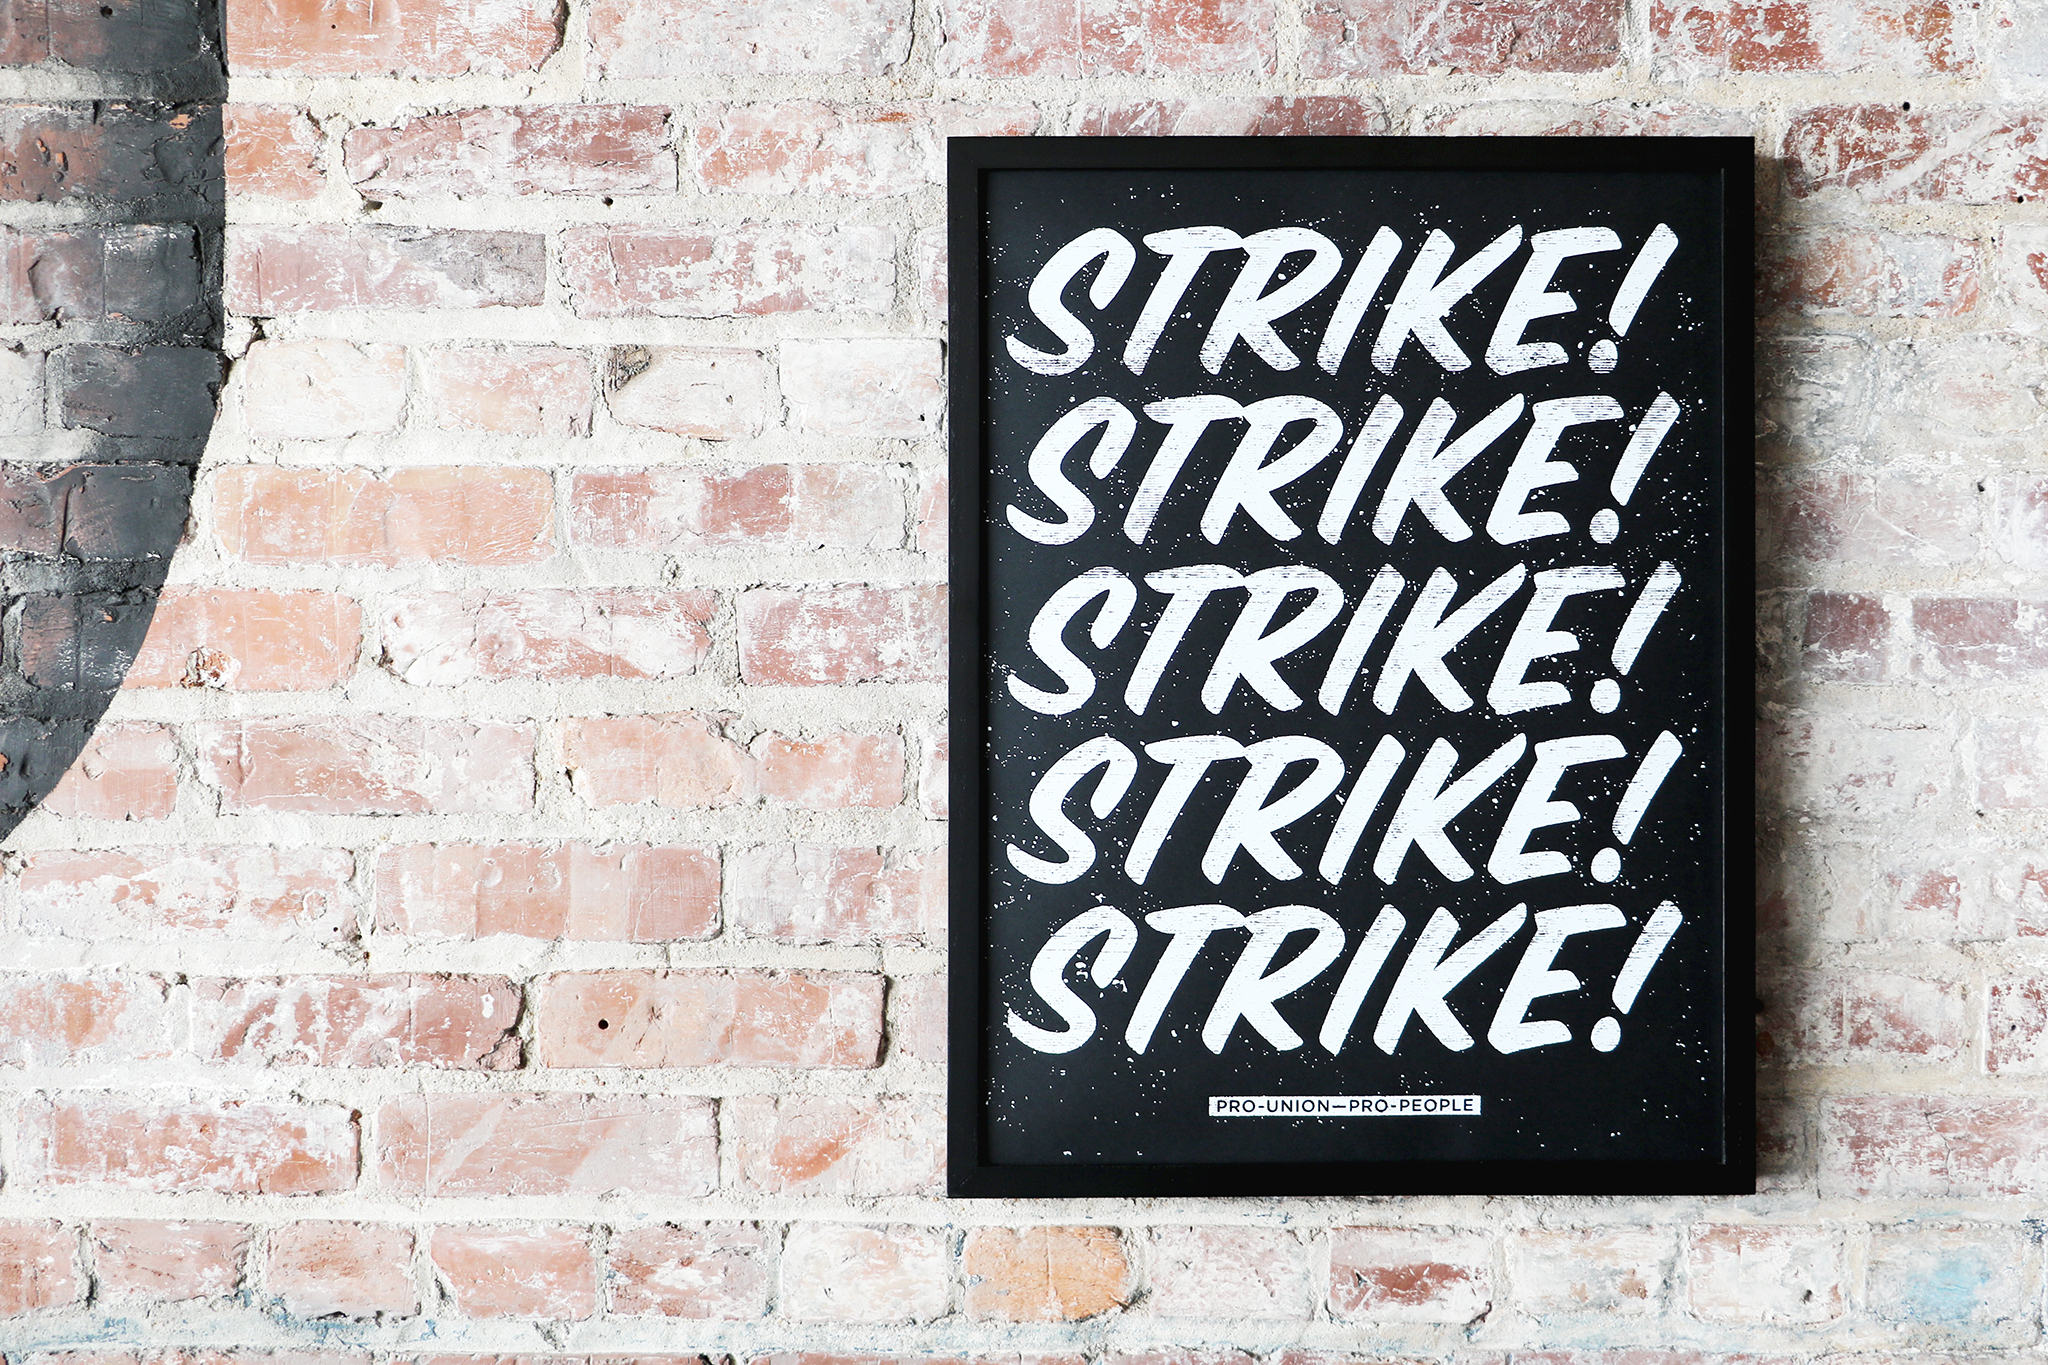 jkdc_powerposters-share-strike.jpg